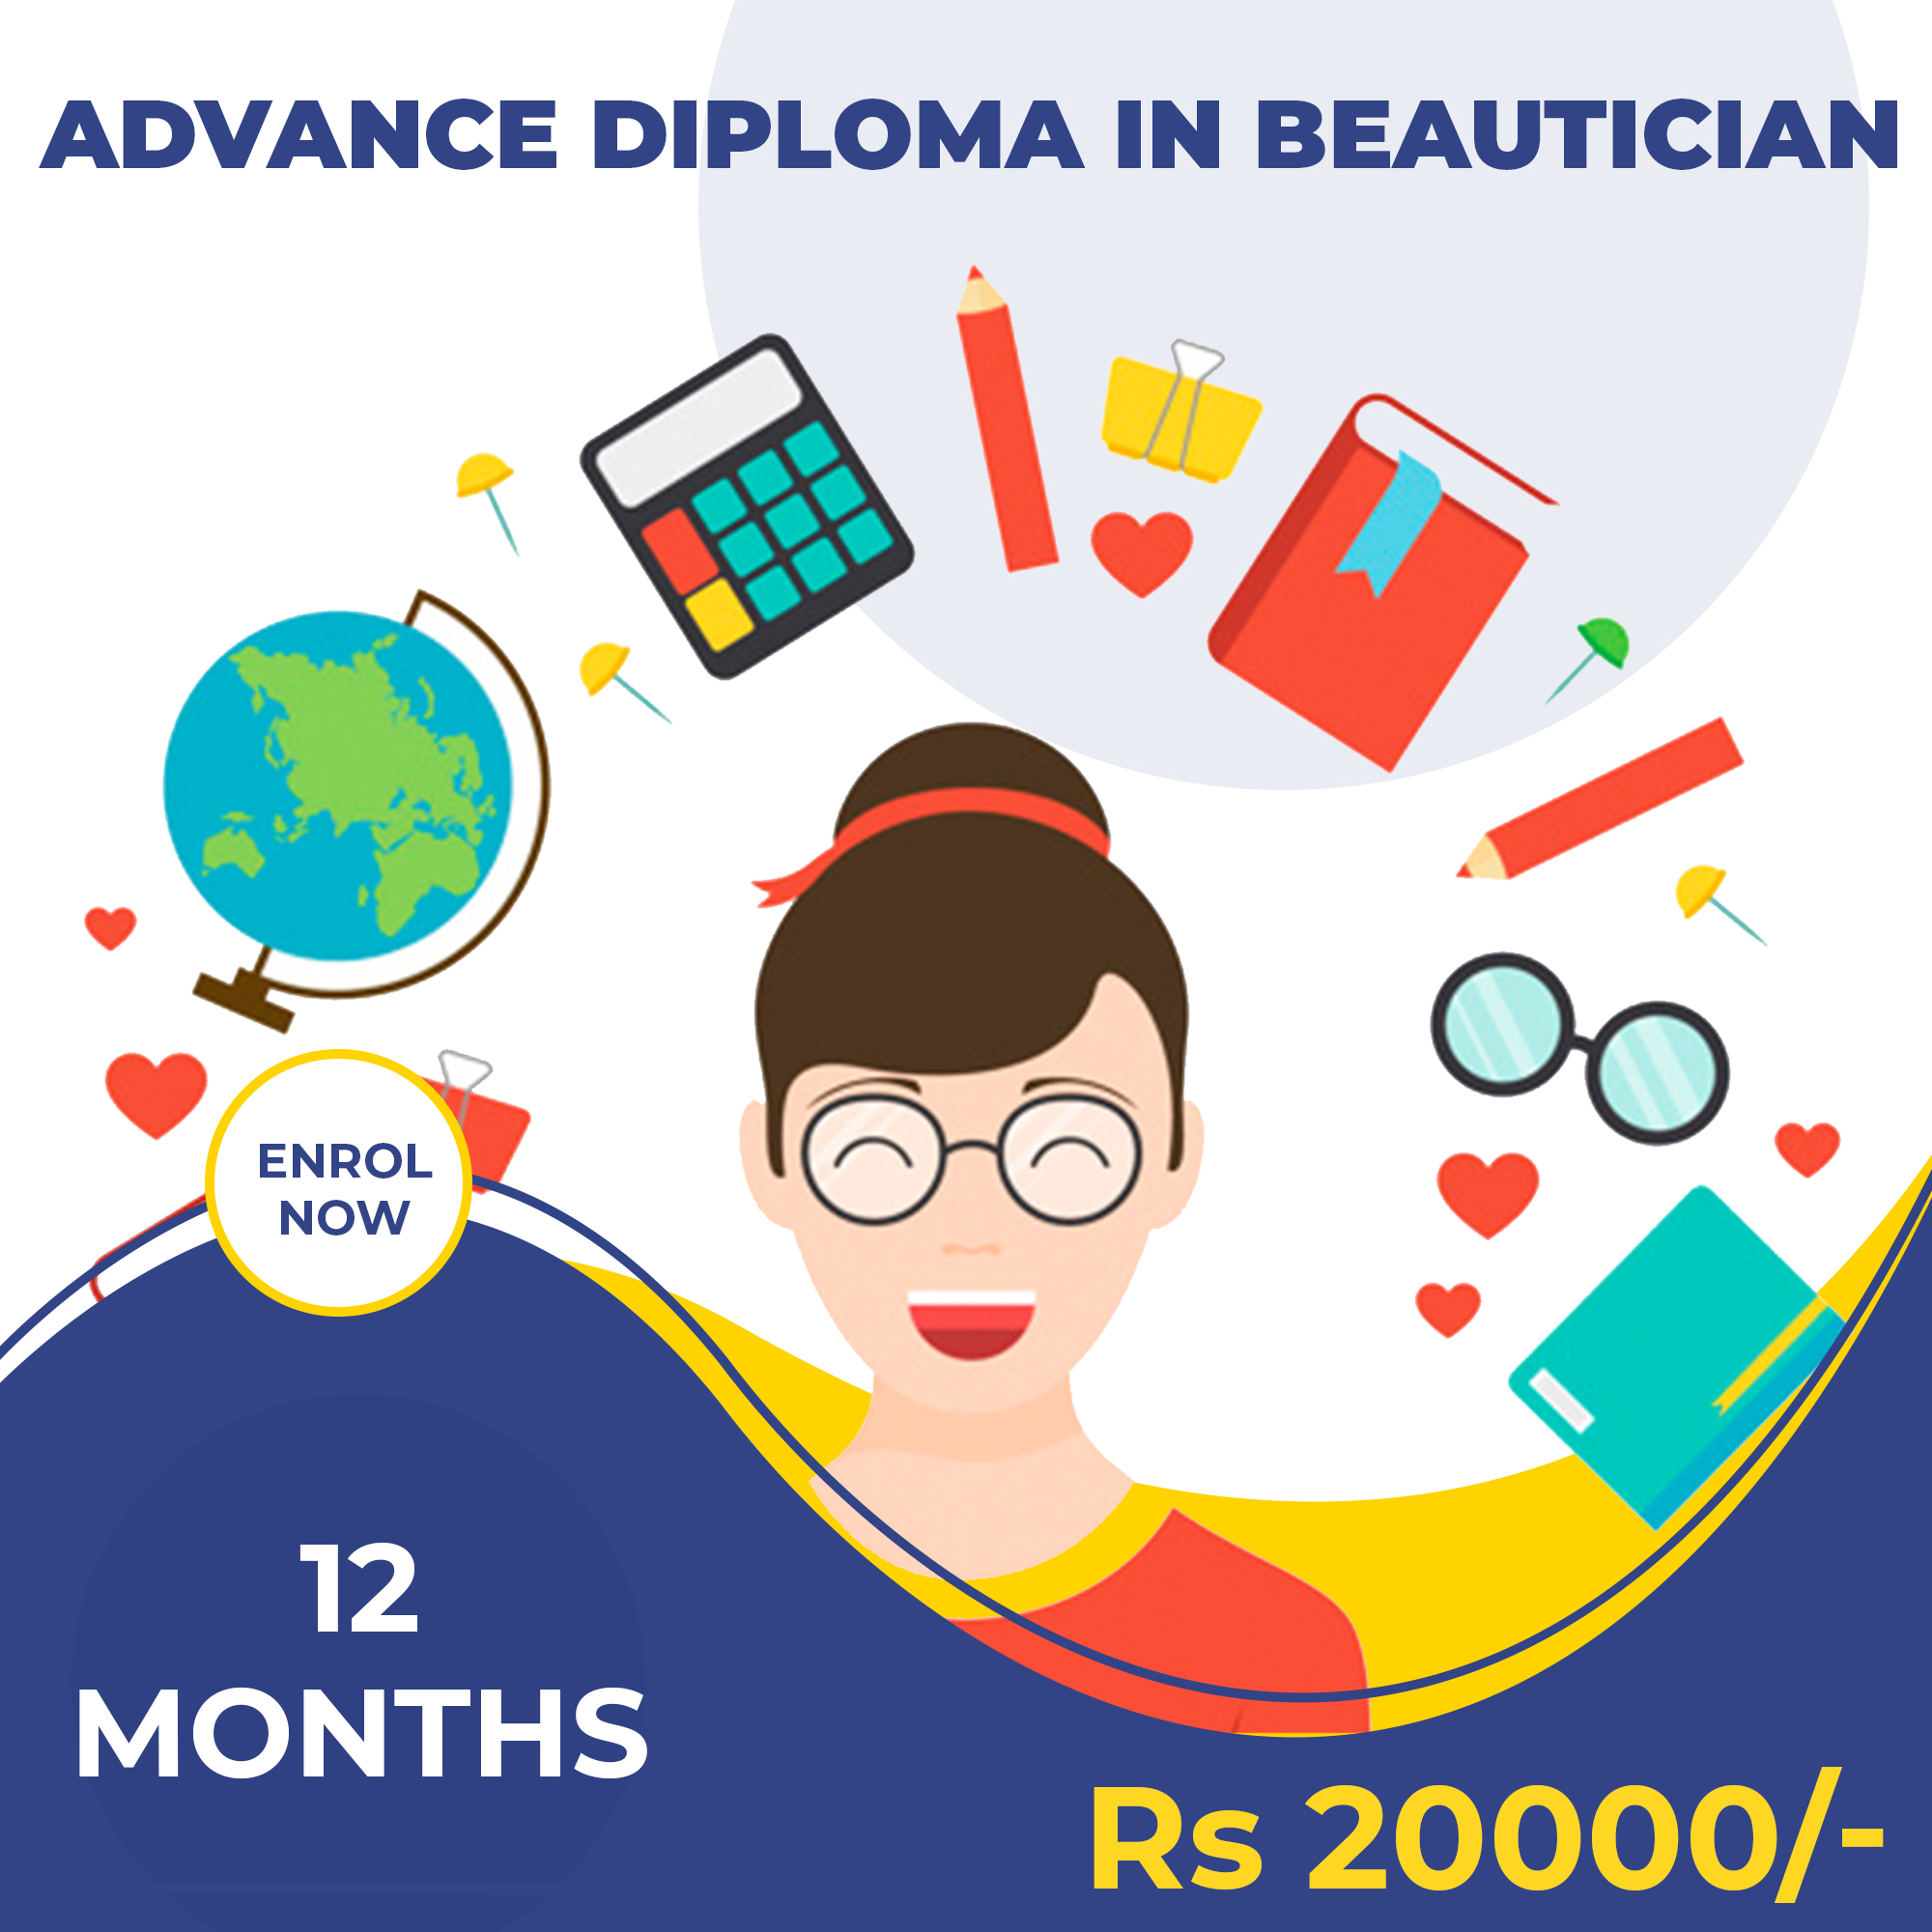 ADVANCE DIPLOMA IN BEAUTICIAN